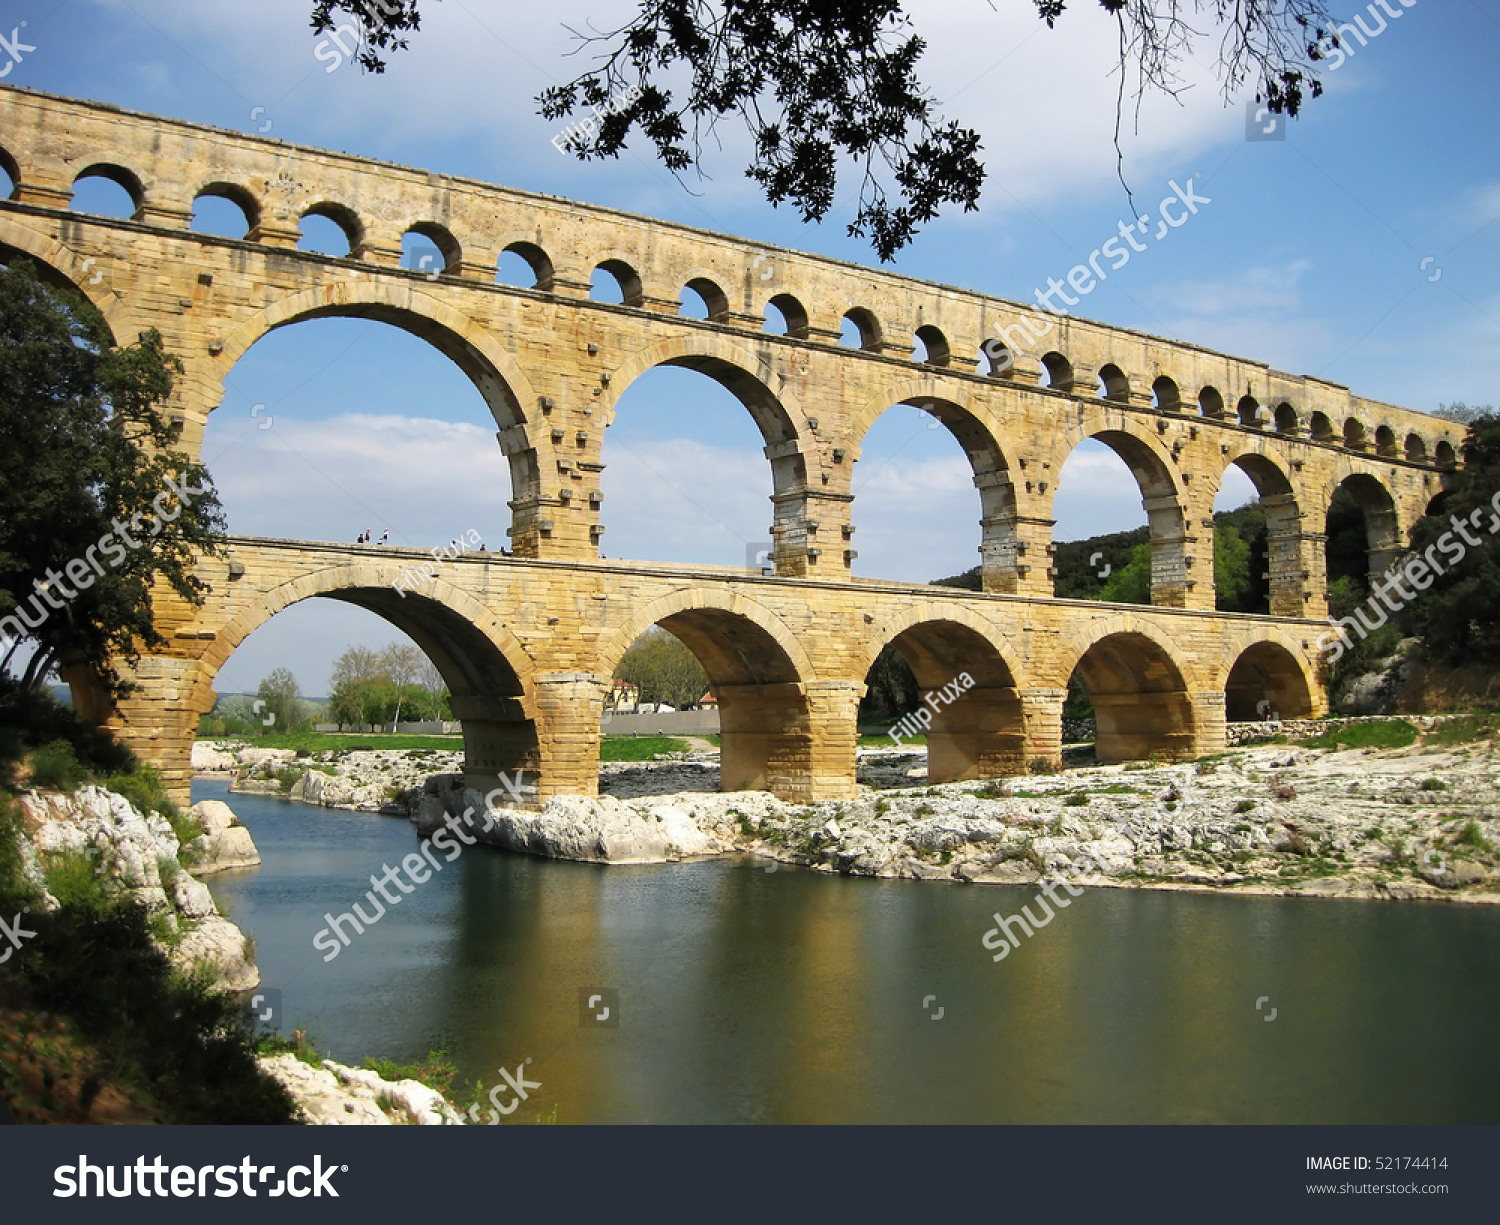 How Old Is The Aqueduct At Nimes 22